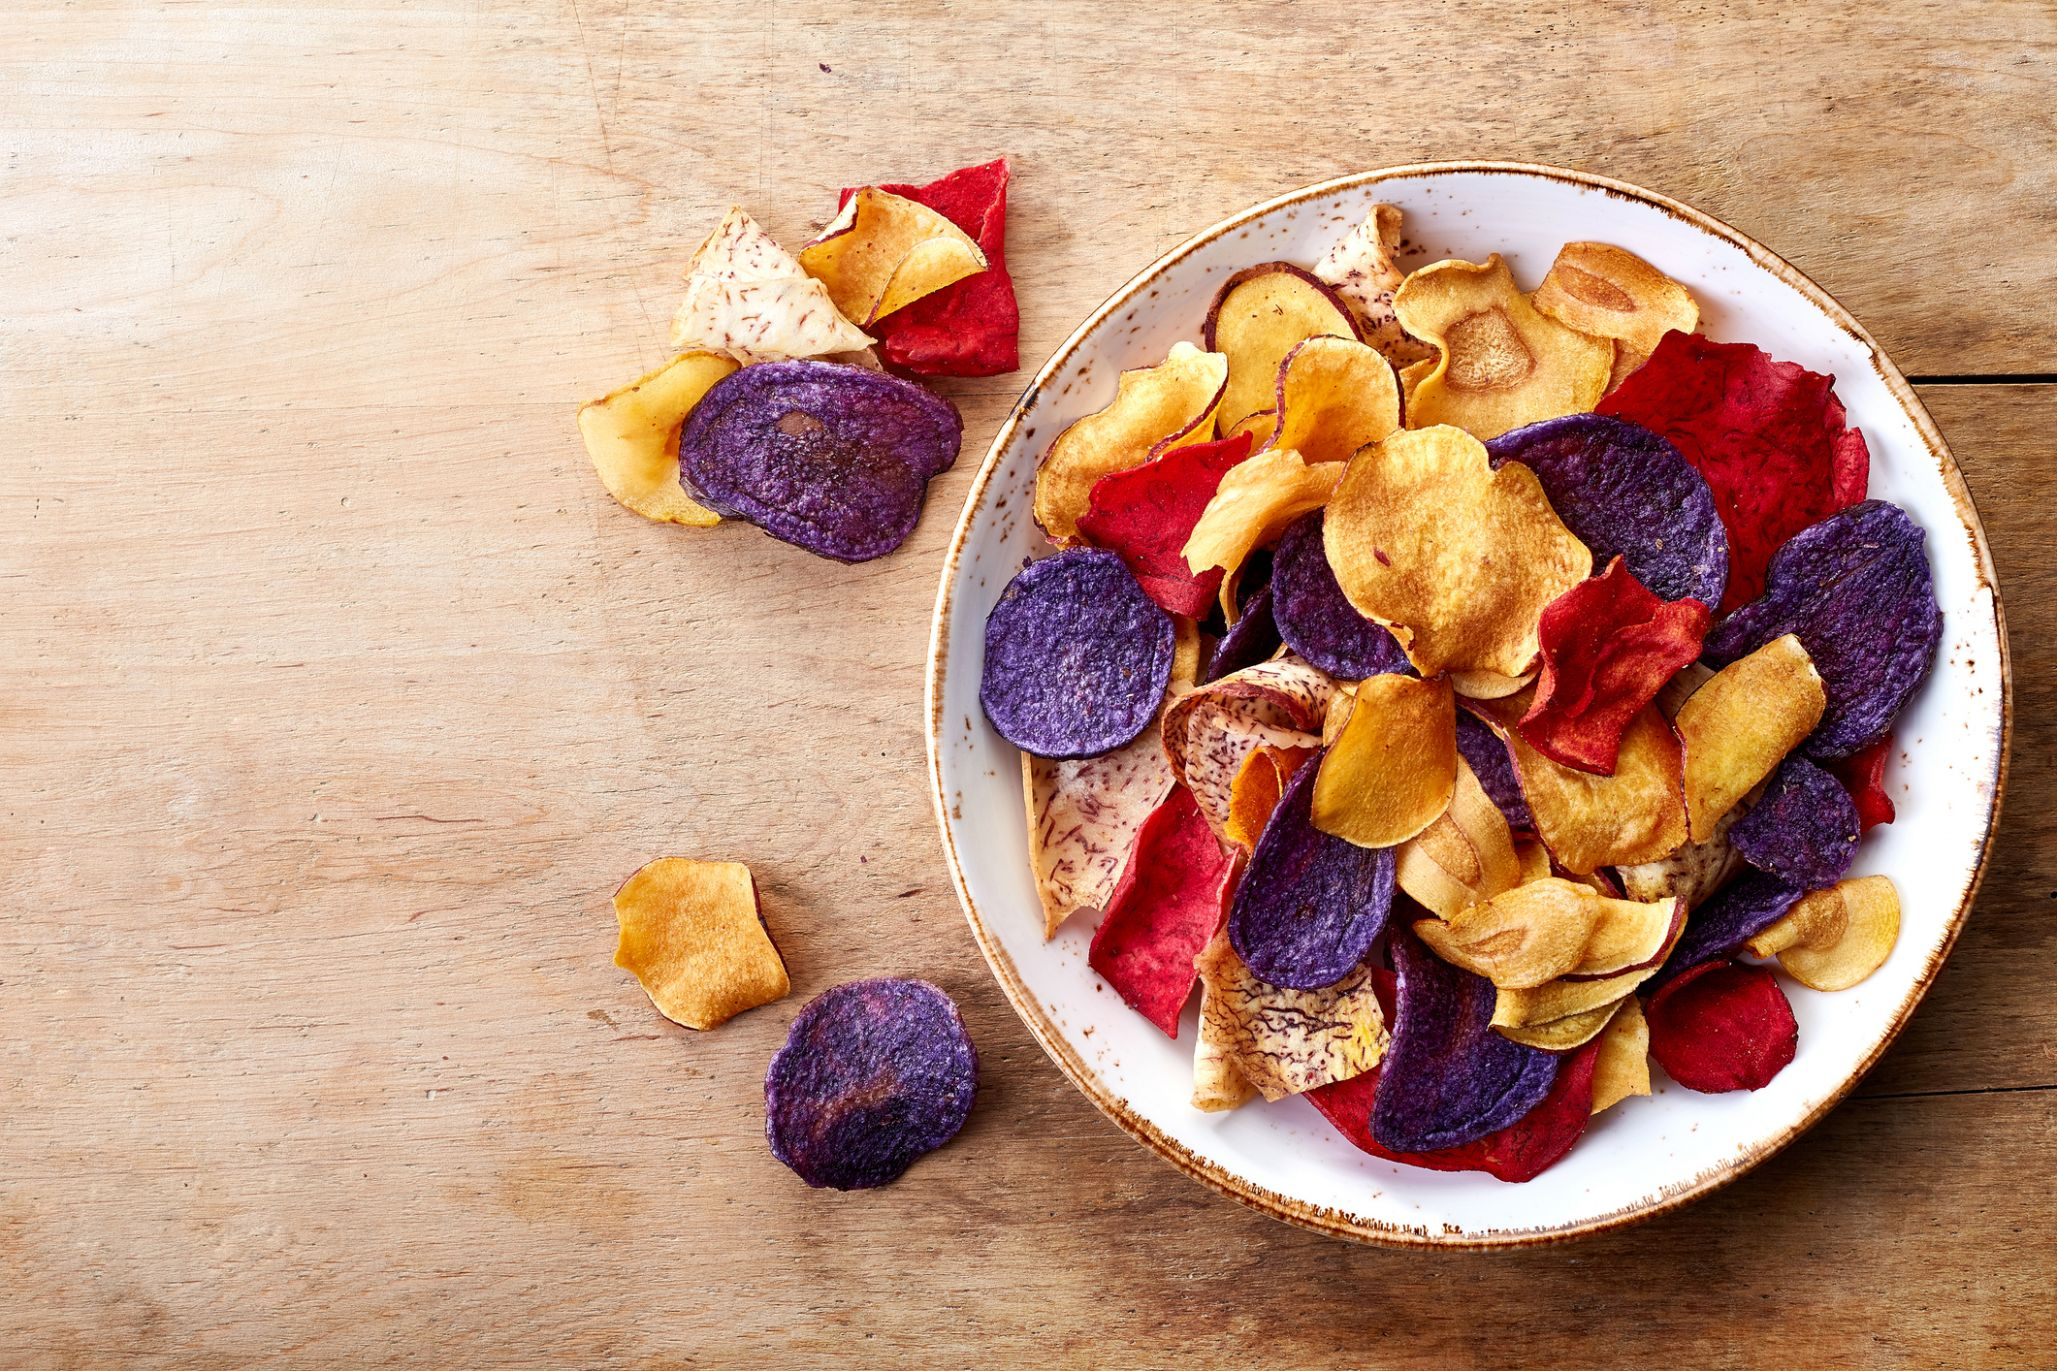 Low Fat Veggies: Delicious Chips | The Leaf Nutrisystem Blog - Recipes Vegetable Chips